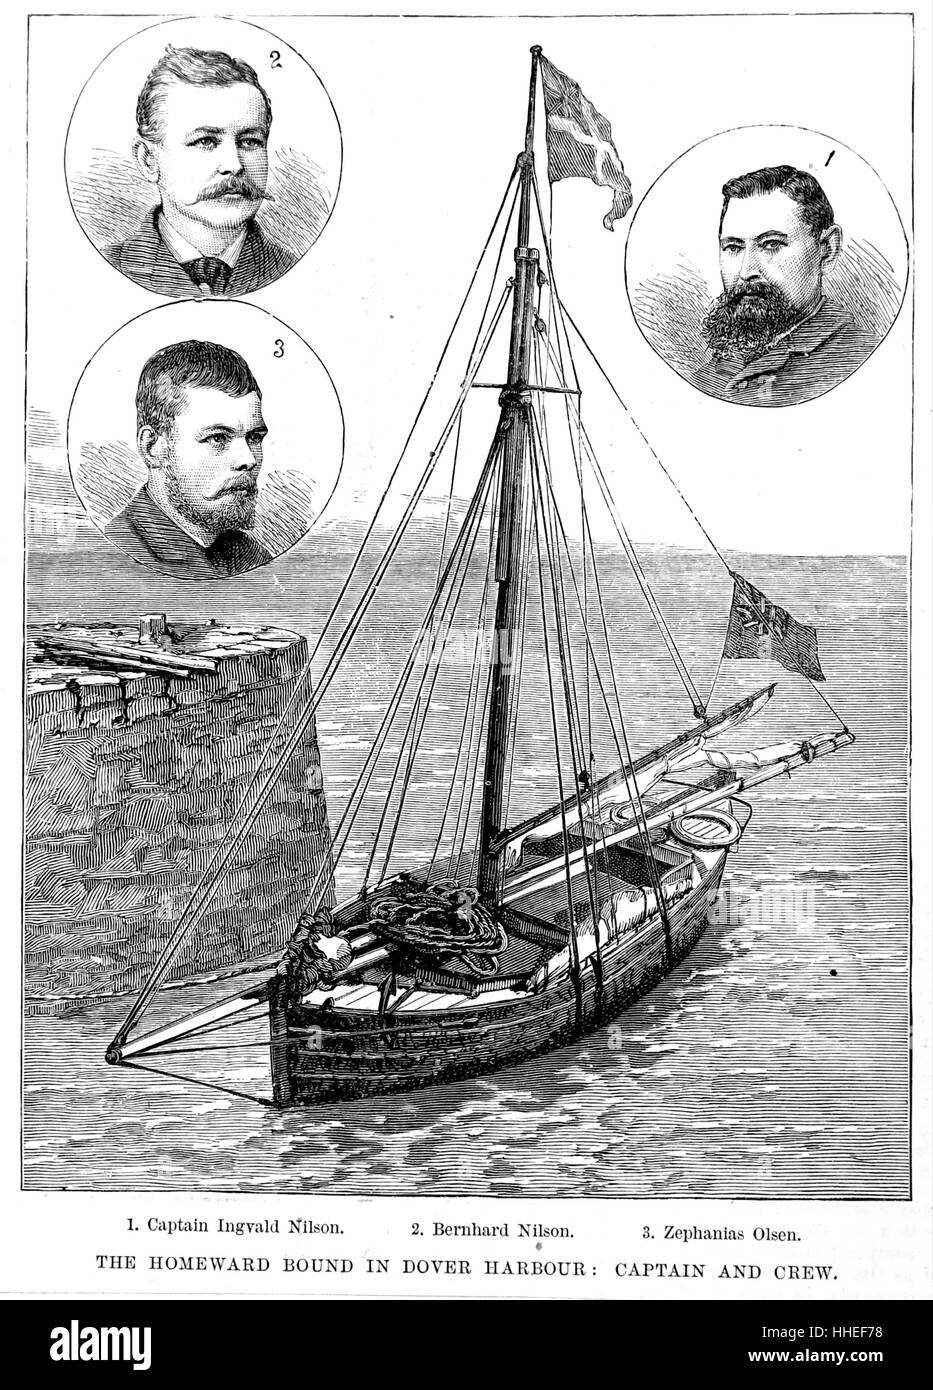 Illustration depicting a homeward bound ship. Dated 19th Century - Stock Image